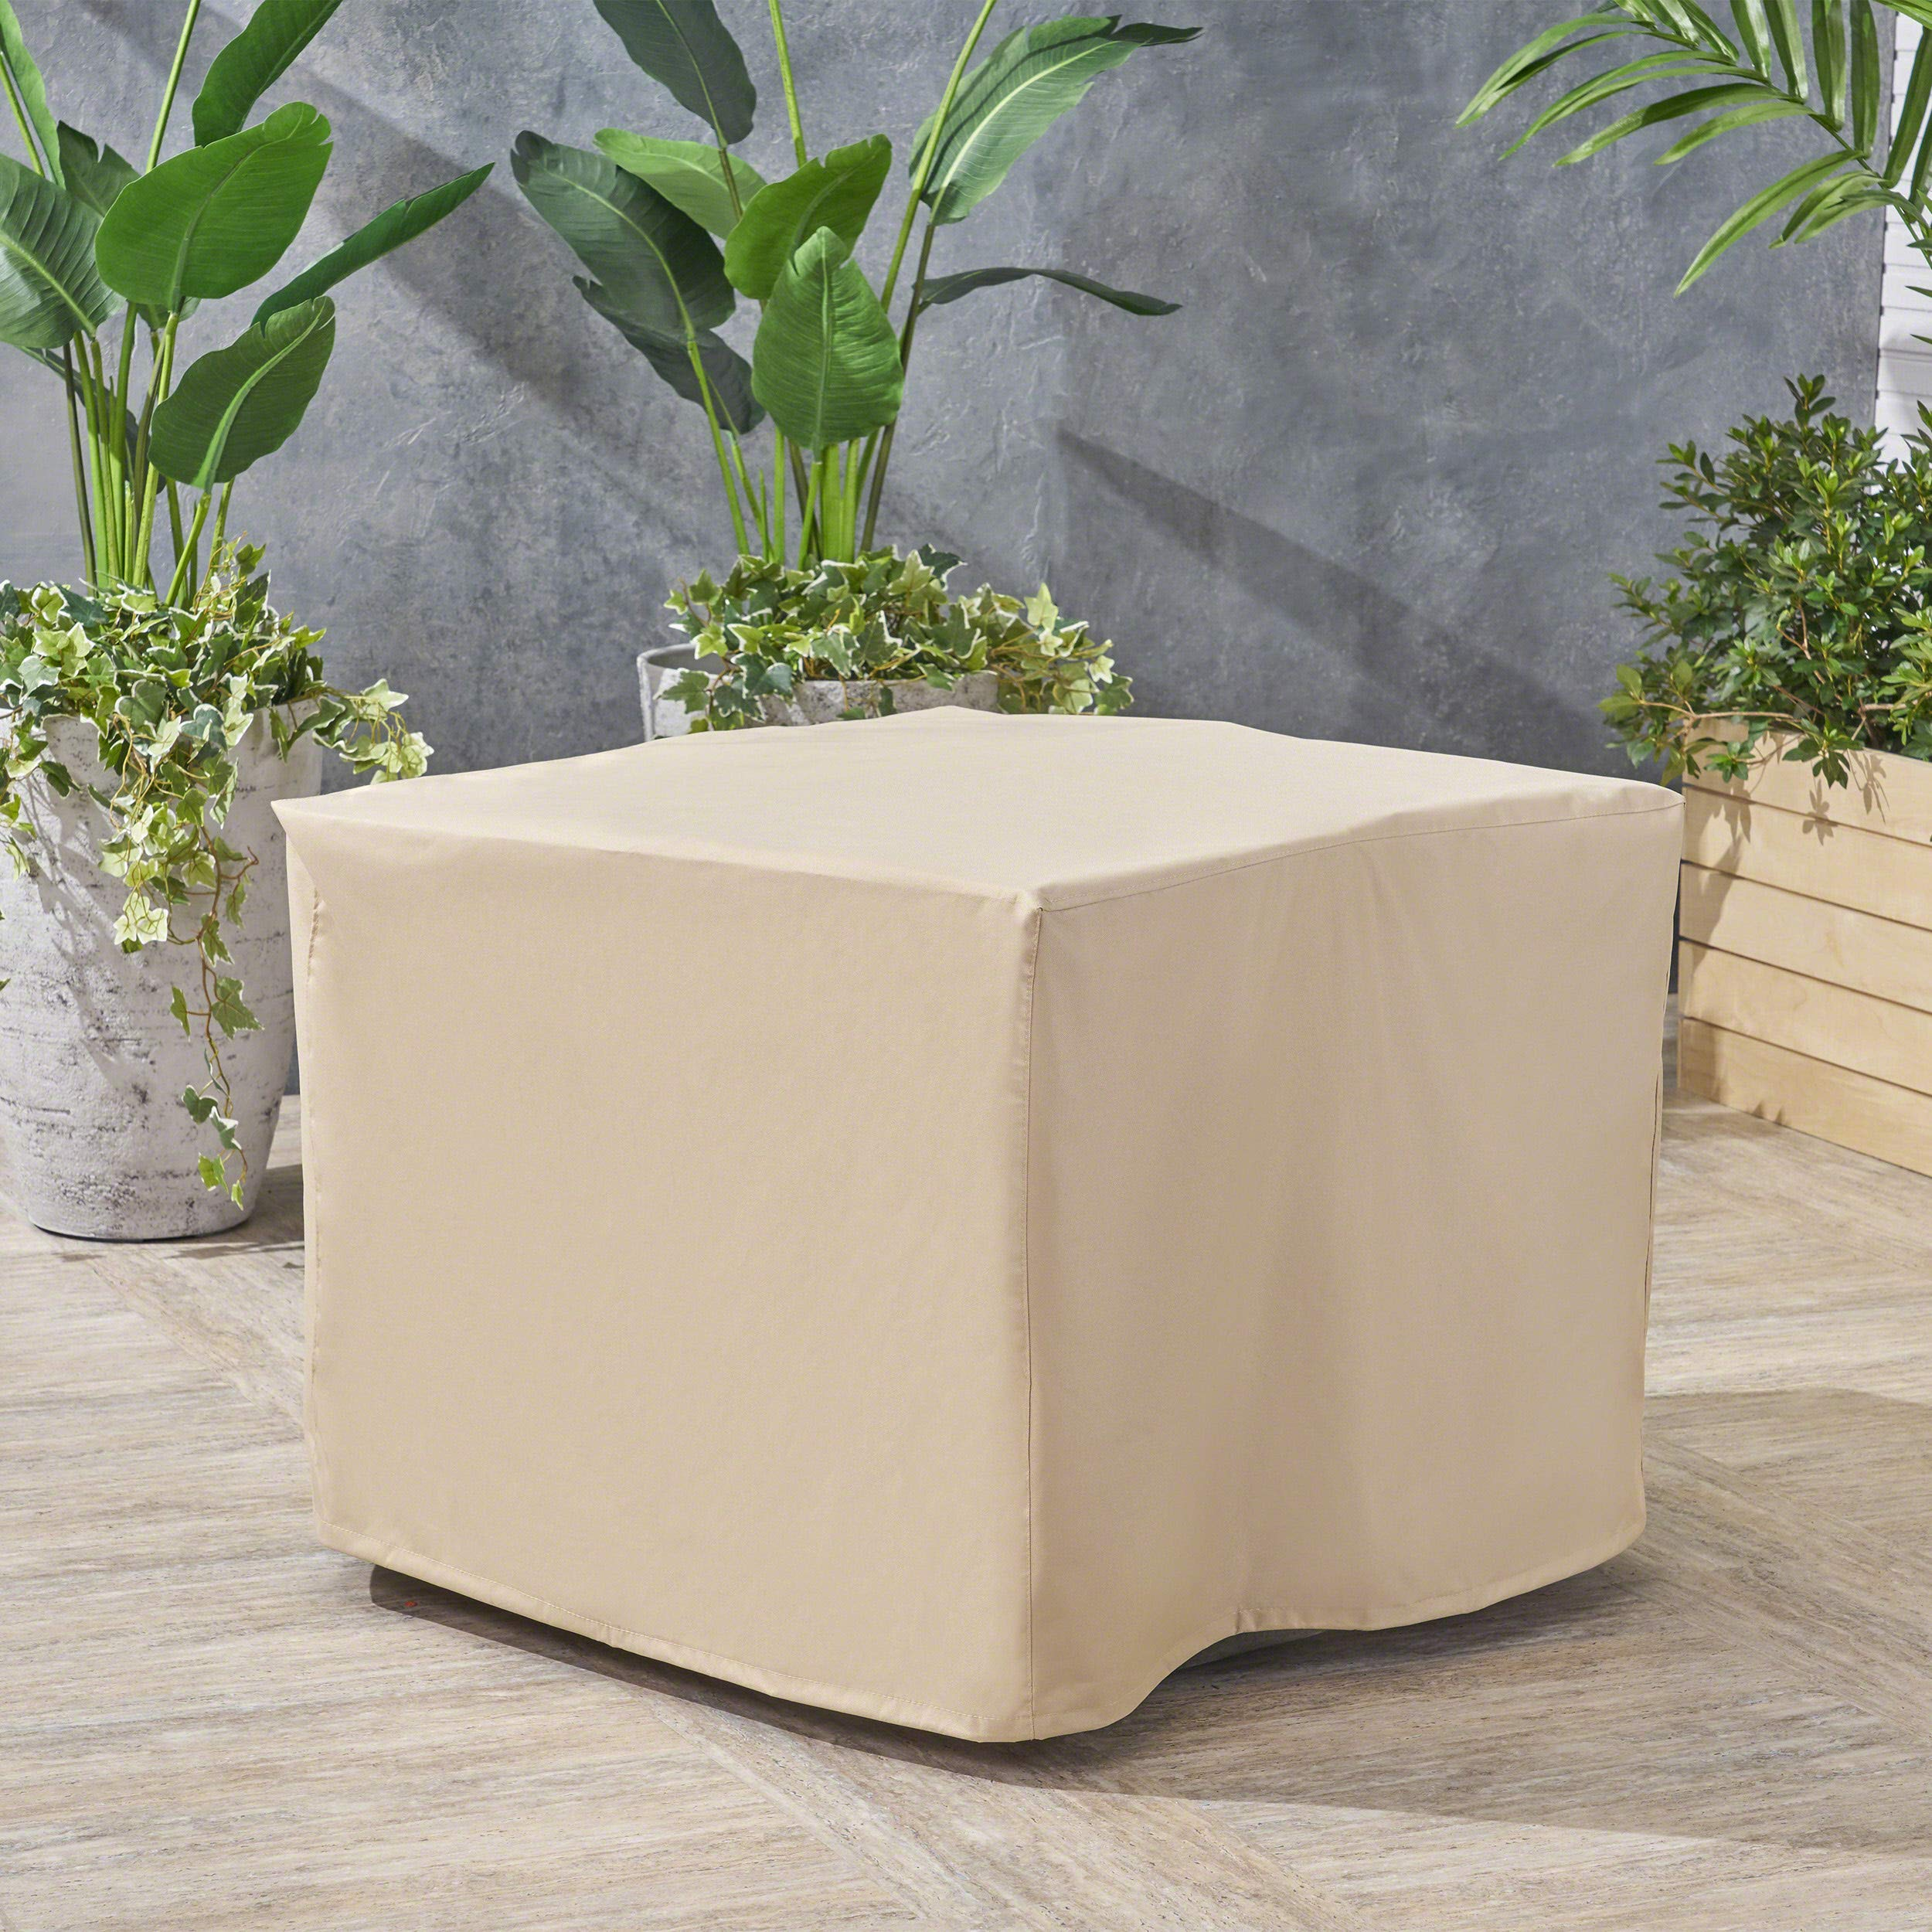 Christopher Knight Home 305094 Paz Outdoor 34'' Waterproof Square Fire Pit Cover, Beige by Christopher Knight Home